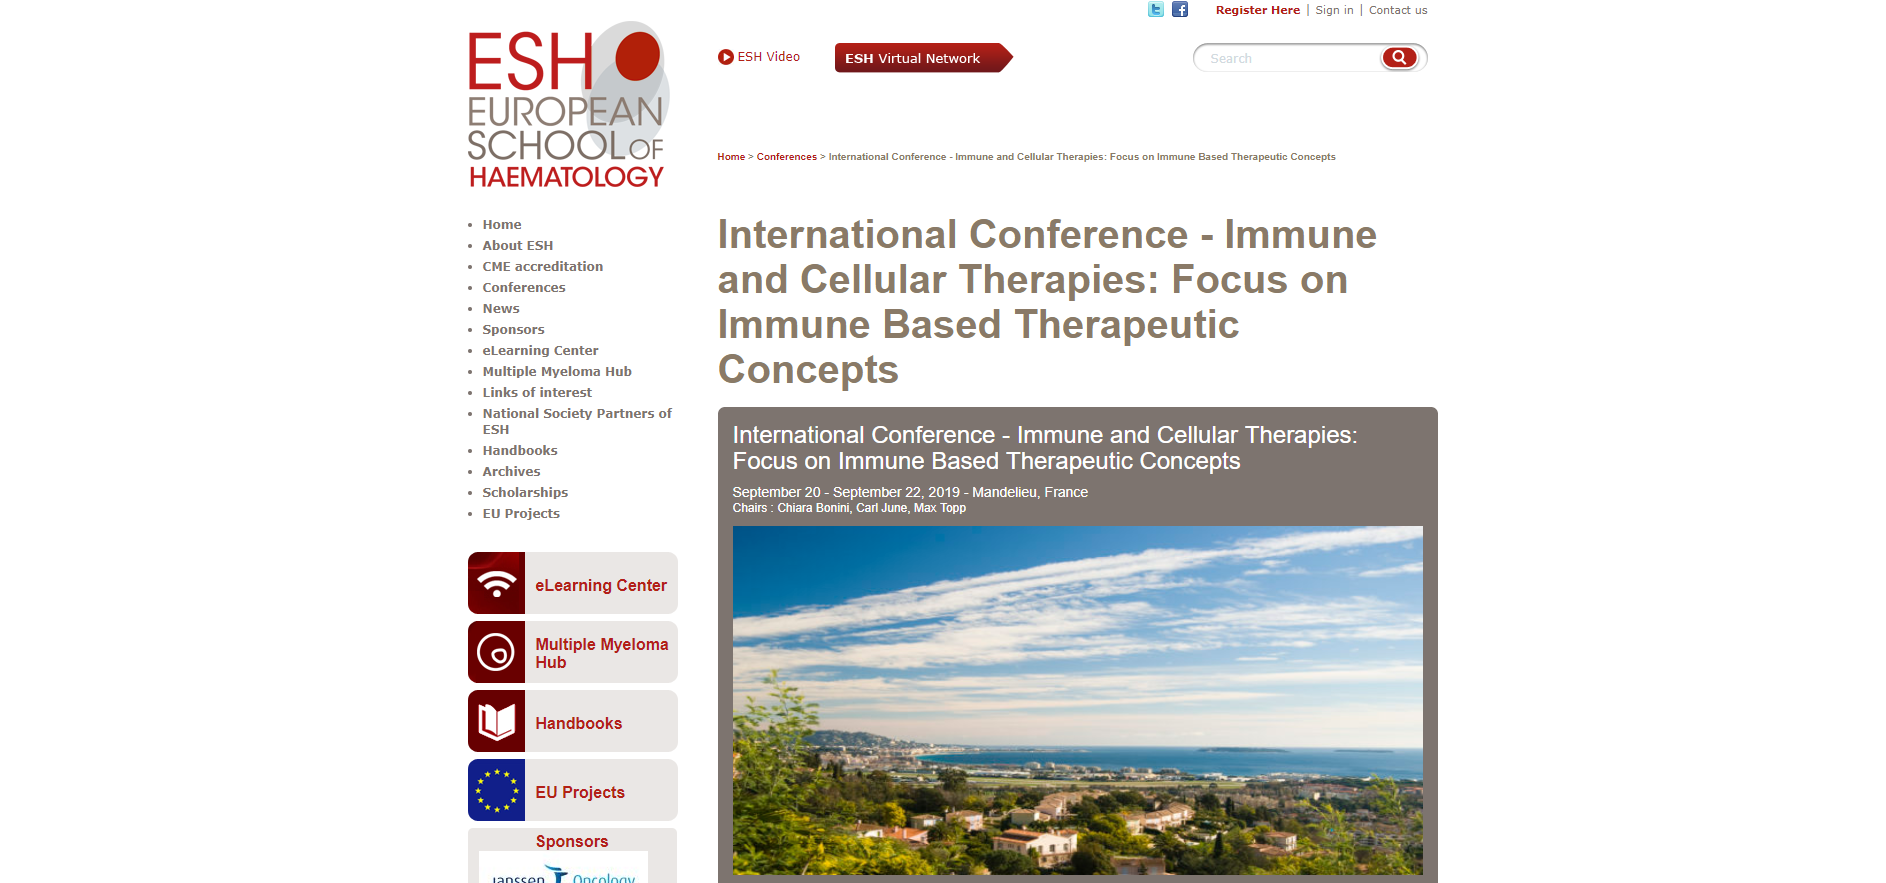 International Conference Immune and Cellular Therapies, Focused on Immune Based Therapeutic Concepts